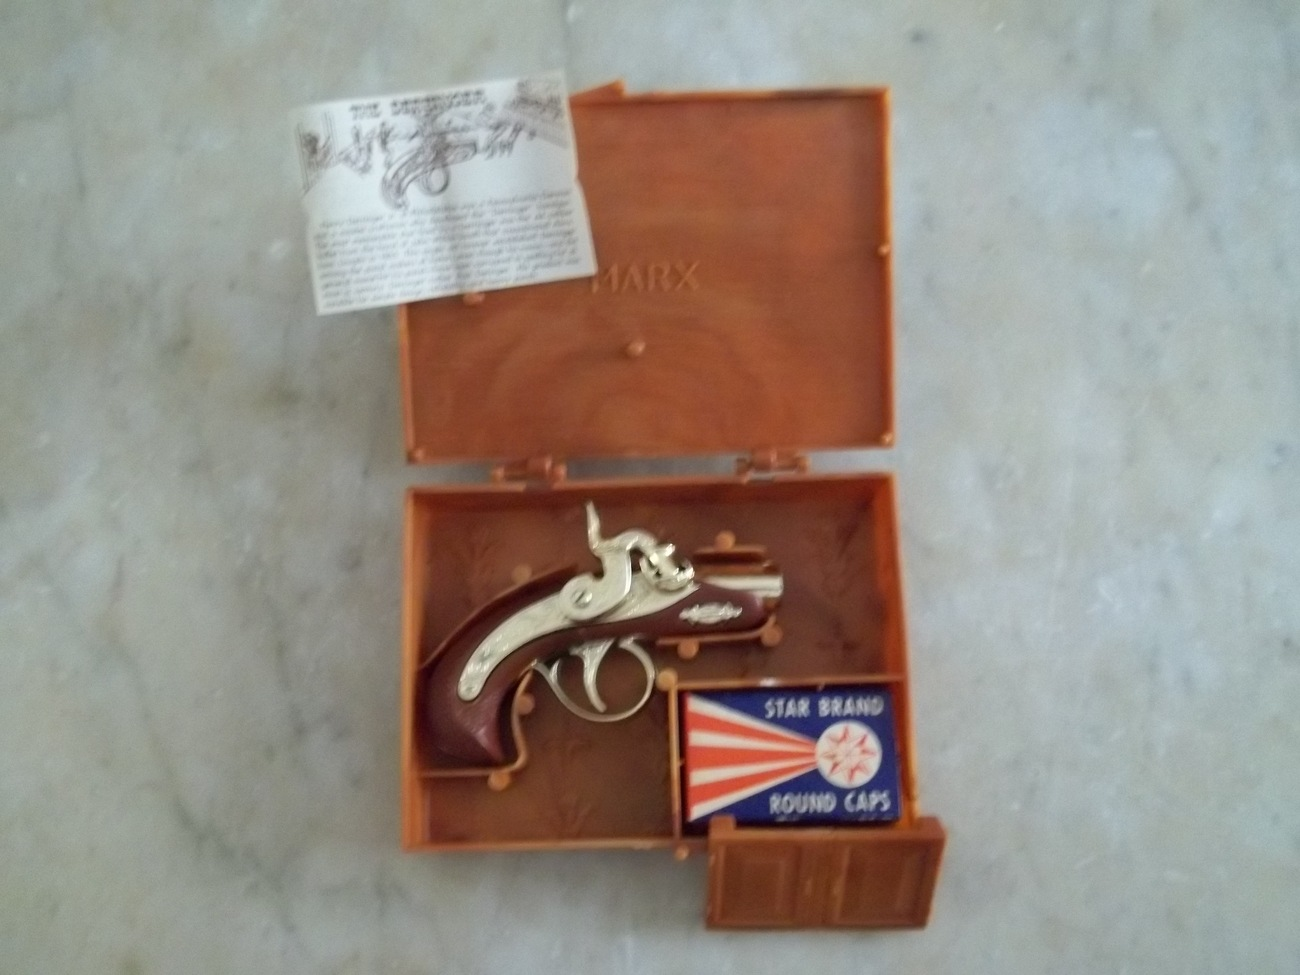 Marx original golden derringer cap gun in case w/ paperwork & caps